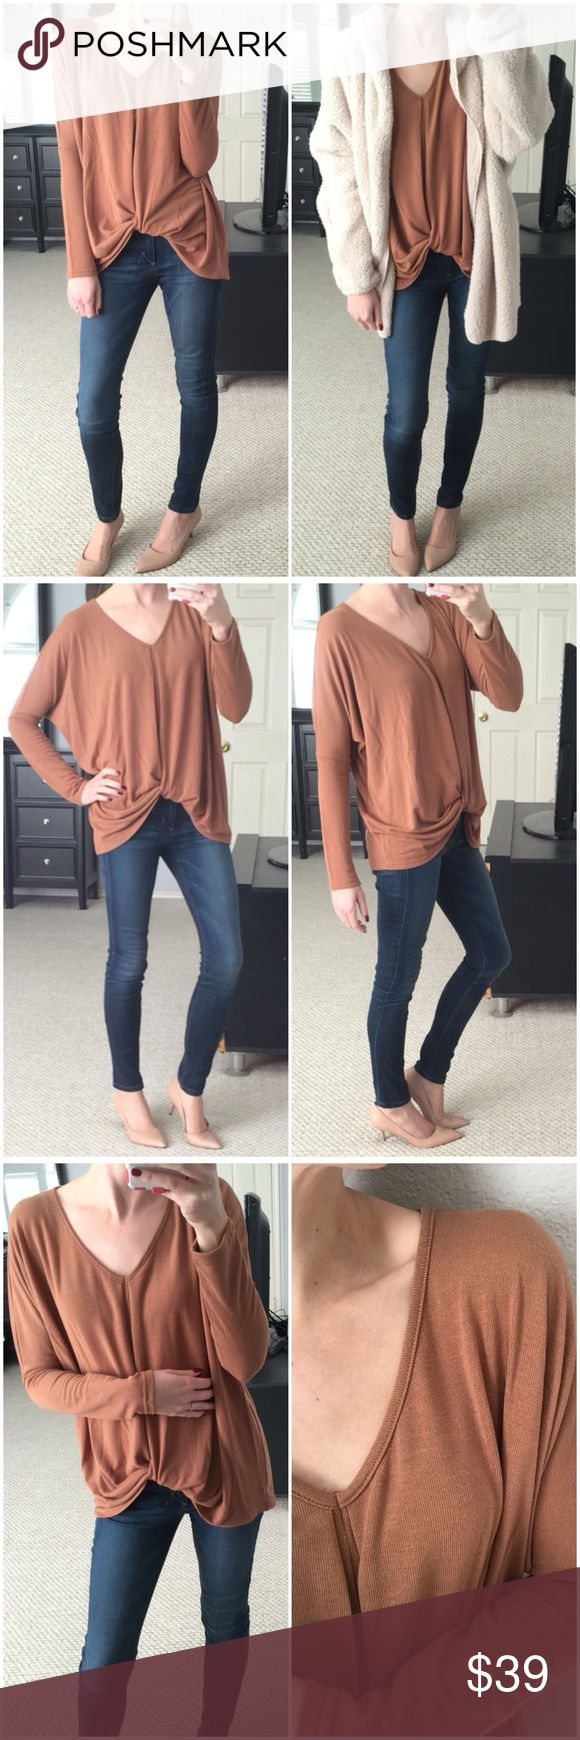 "LAST 2▫️Camel Knotted Long Sleeve Top This color! 😍 Camel long sleeve top with v-neck and knot design on front. Such a cute spin in a basic. Great neutral color, perfect for colder months. Wide dolman sleeves. Great top for layering. Has a nice, texture to it, but is still soft and stretchy. Just love this one!  Modeling small. 60% cotton 40% rayon. Measurements as follows: Length: (S) 22/25"" (M) 22.5/26""  (L) 23/27"" *Bundle 2+ items for a discount. Tops Tees - Long Sleeve"